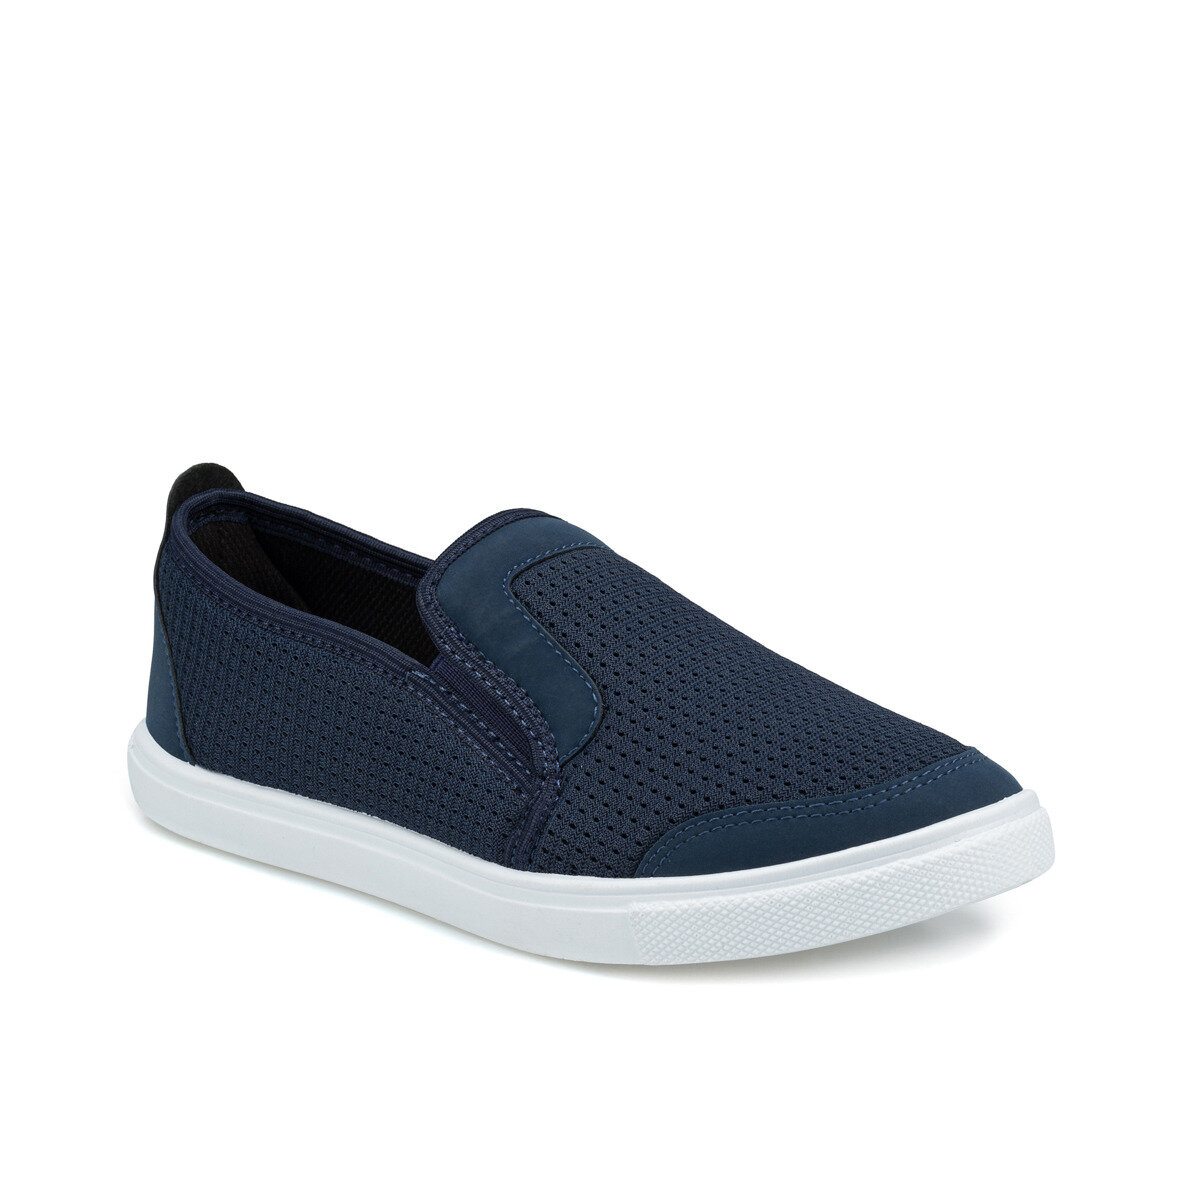 FLO Navy Blue Women Casual Shoes 2020 Summer Mesh Shoe Sneakers Women Shoes Breathable Women's Shoes Slip-On Loafers Casual Walking Polaris  315531.Z